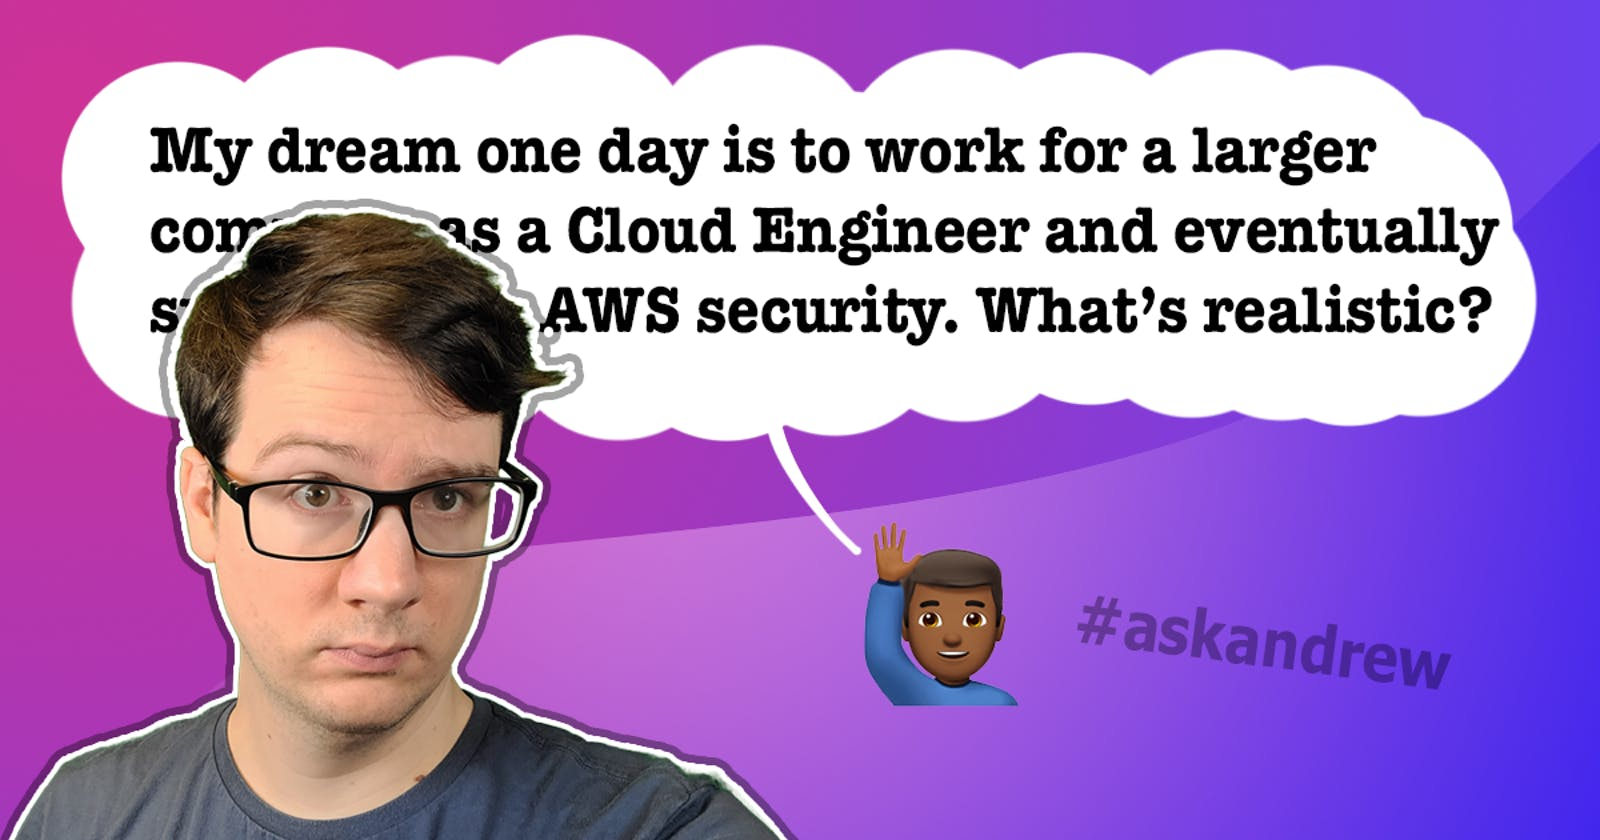 My dream one day is to work for a larger company as a Cloud Engineer and eventually specialize in AWS security. What is a realistic path?